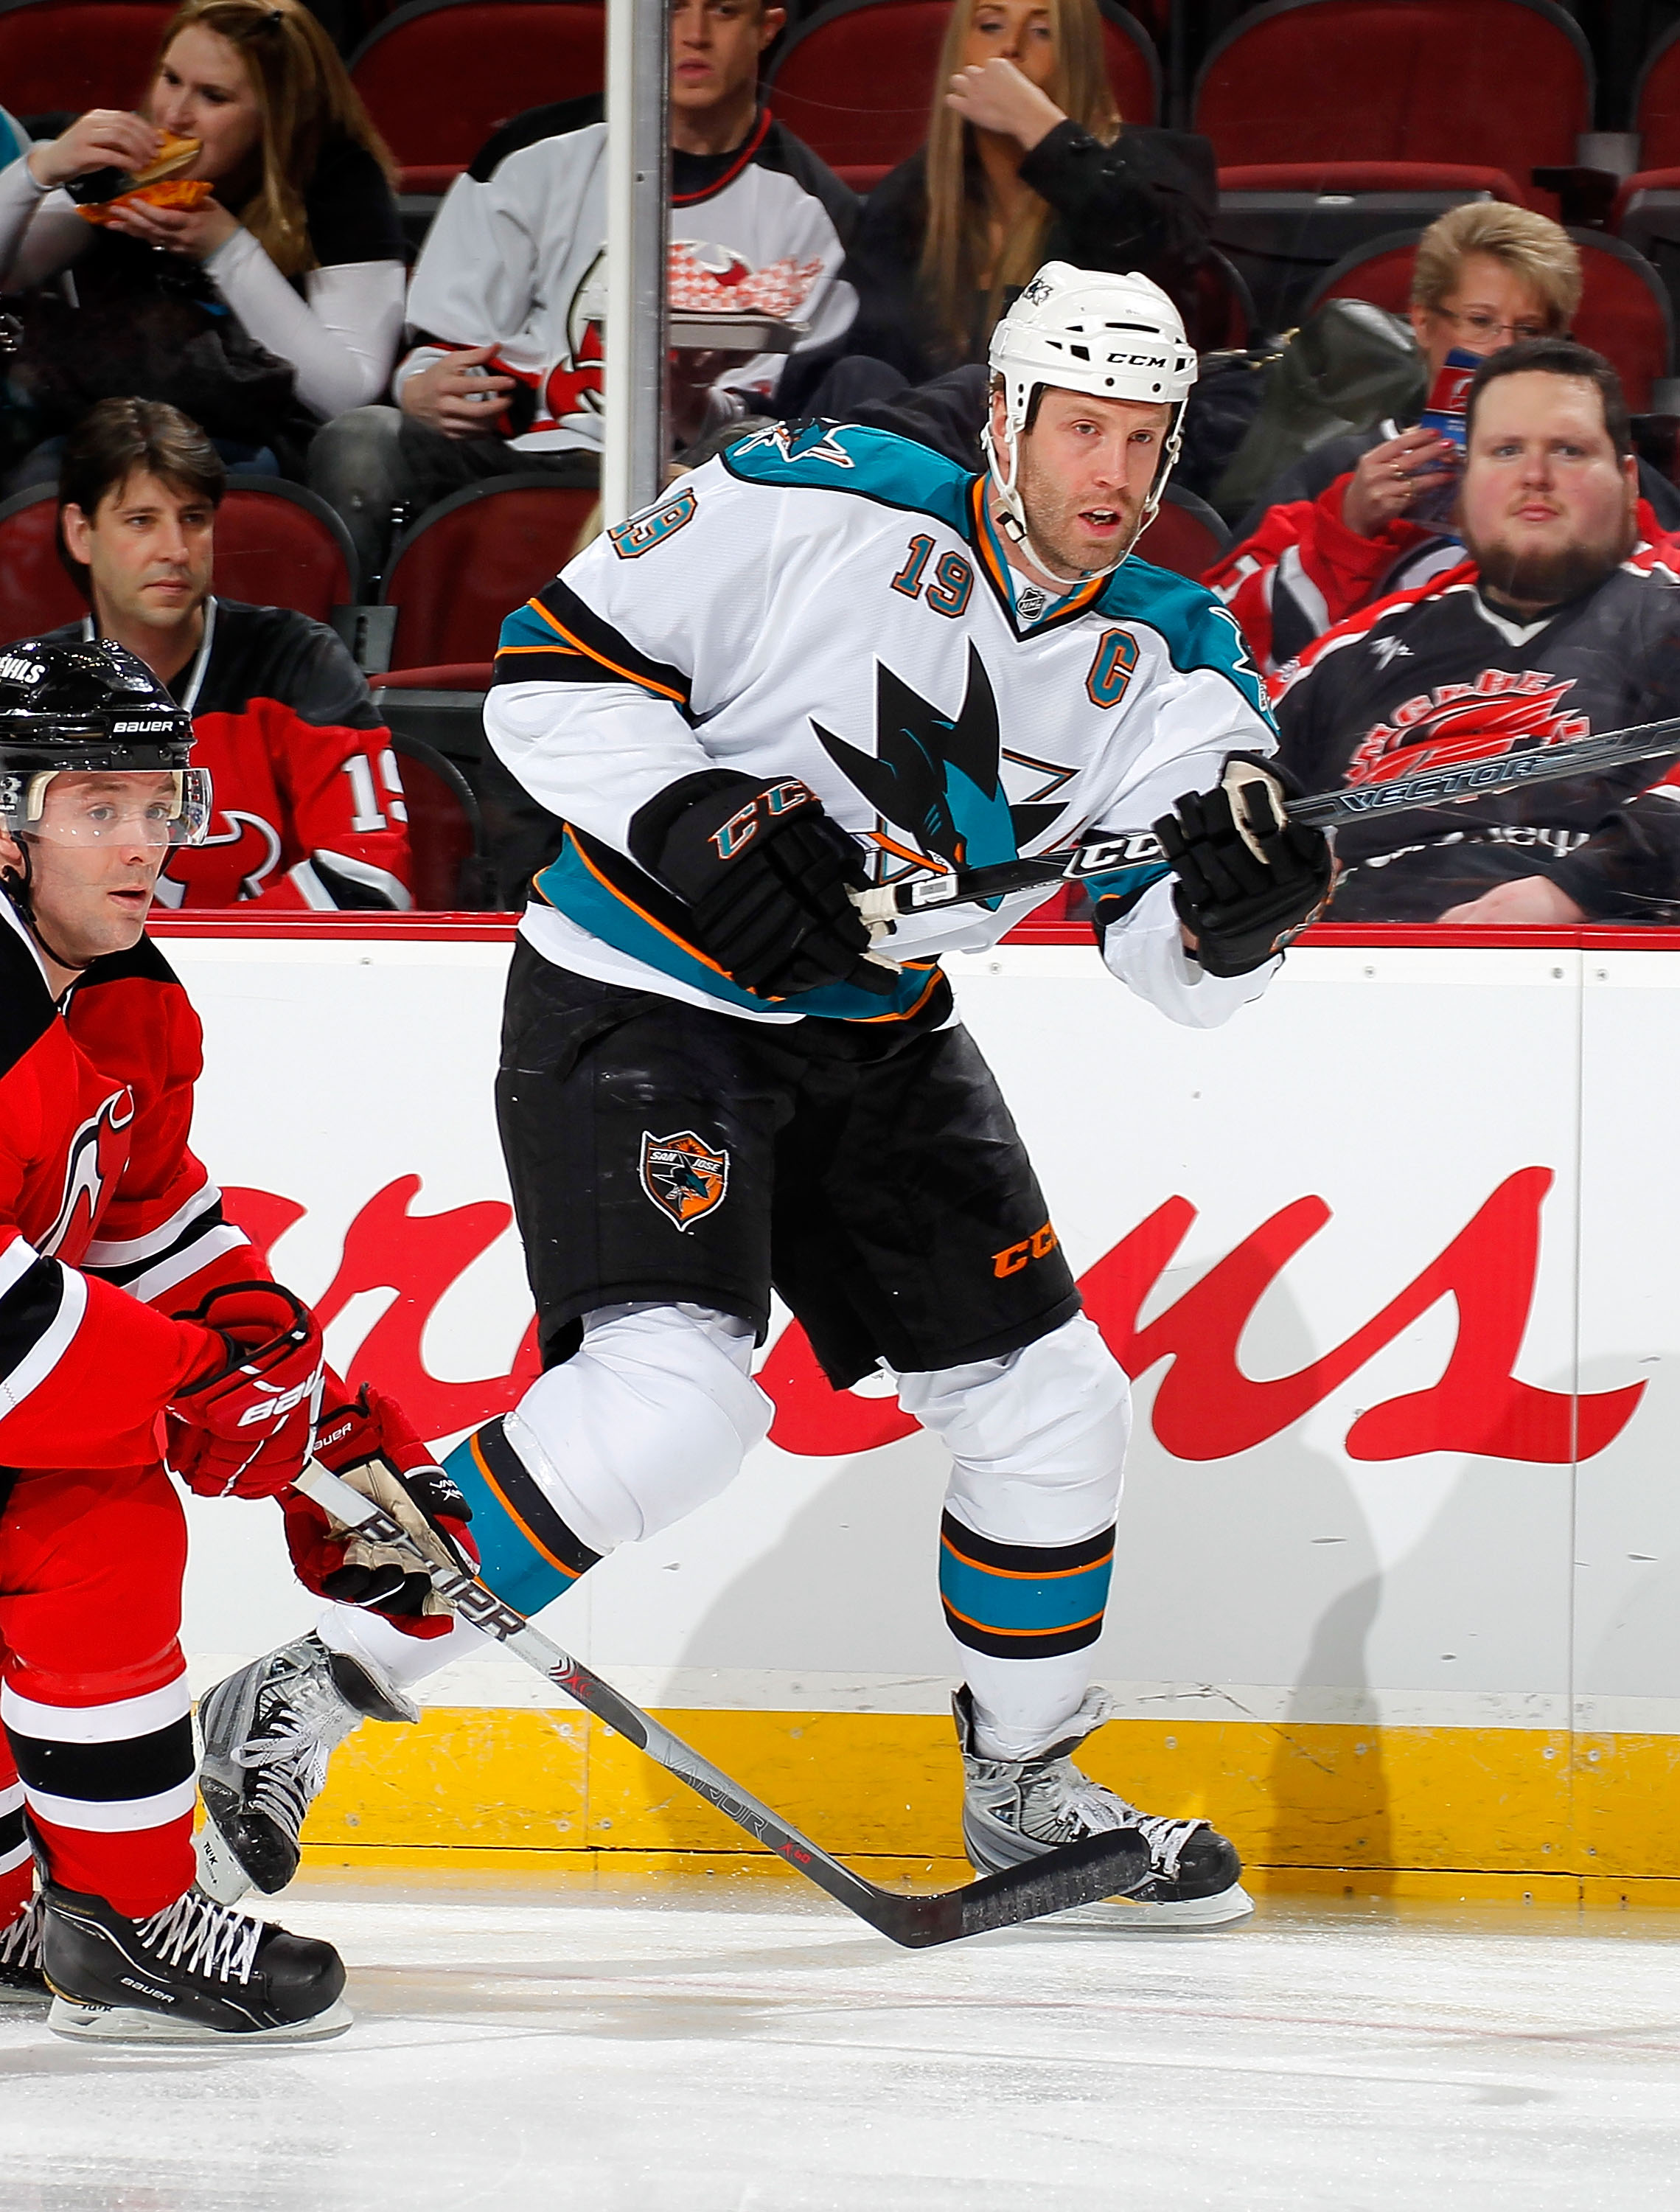 NEWARK, NJ - FEBRUARY 11: Joe Thornton #19 of the San Jose Sharks passes in an NHL hockey game against the New Jersey Devils on February 11, 2011 at the Prudential Center in Newark, New Jersey. (Photo by Paul Bereswill/Getty Images)